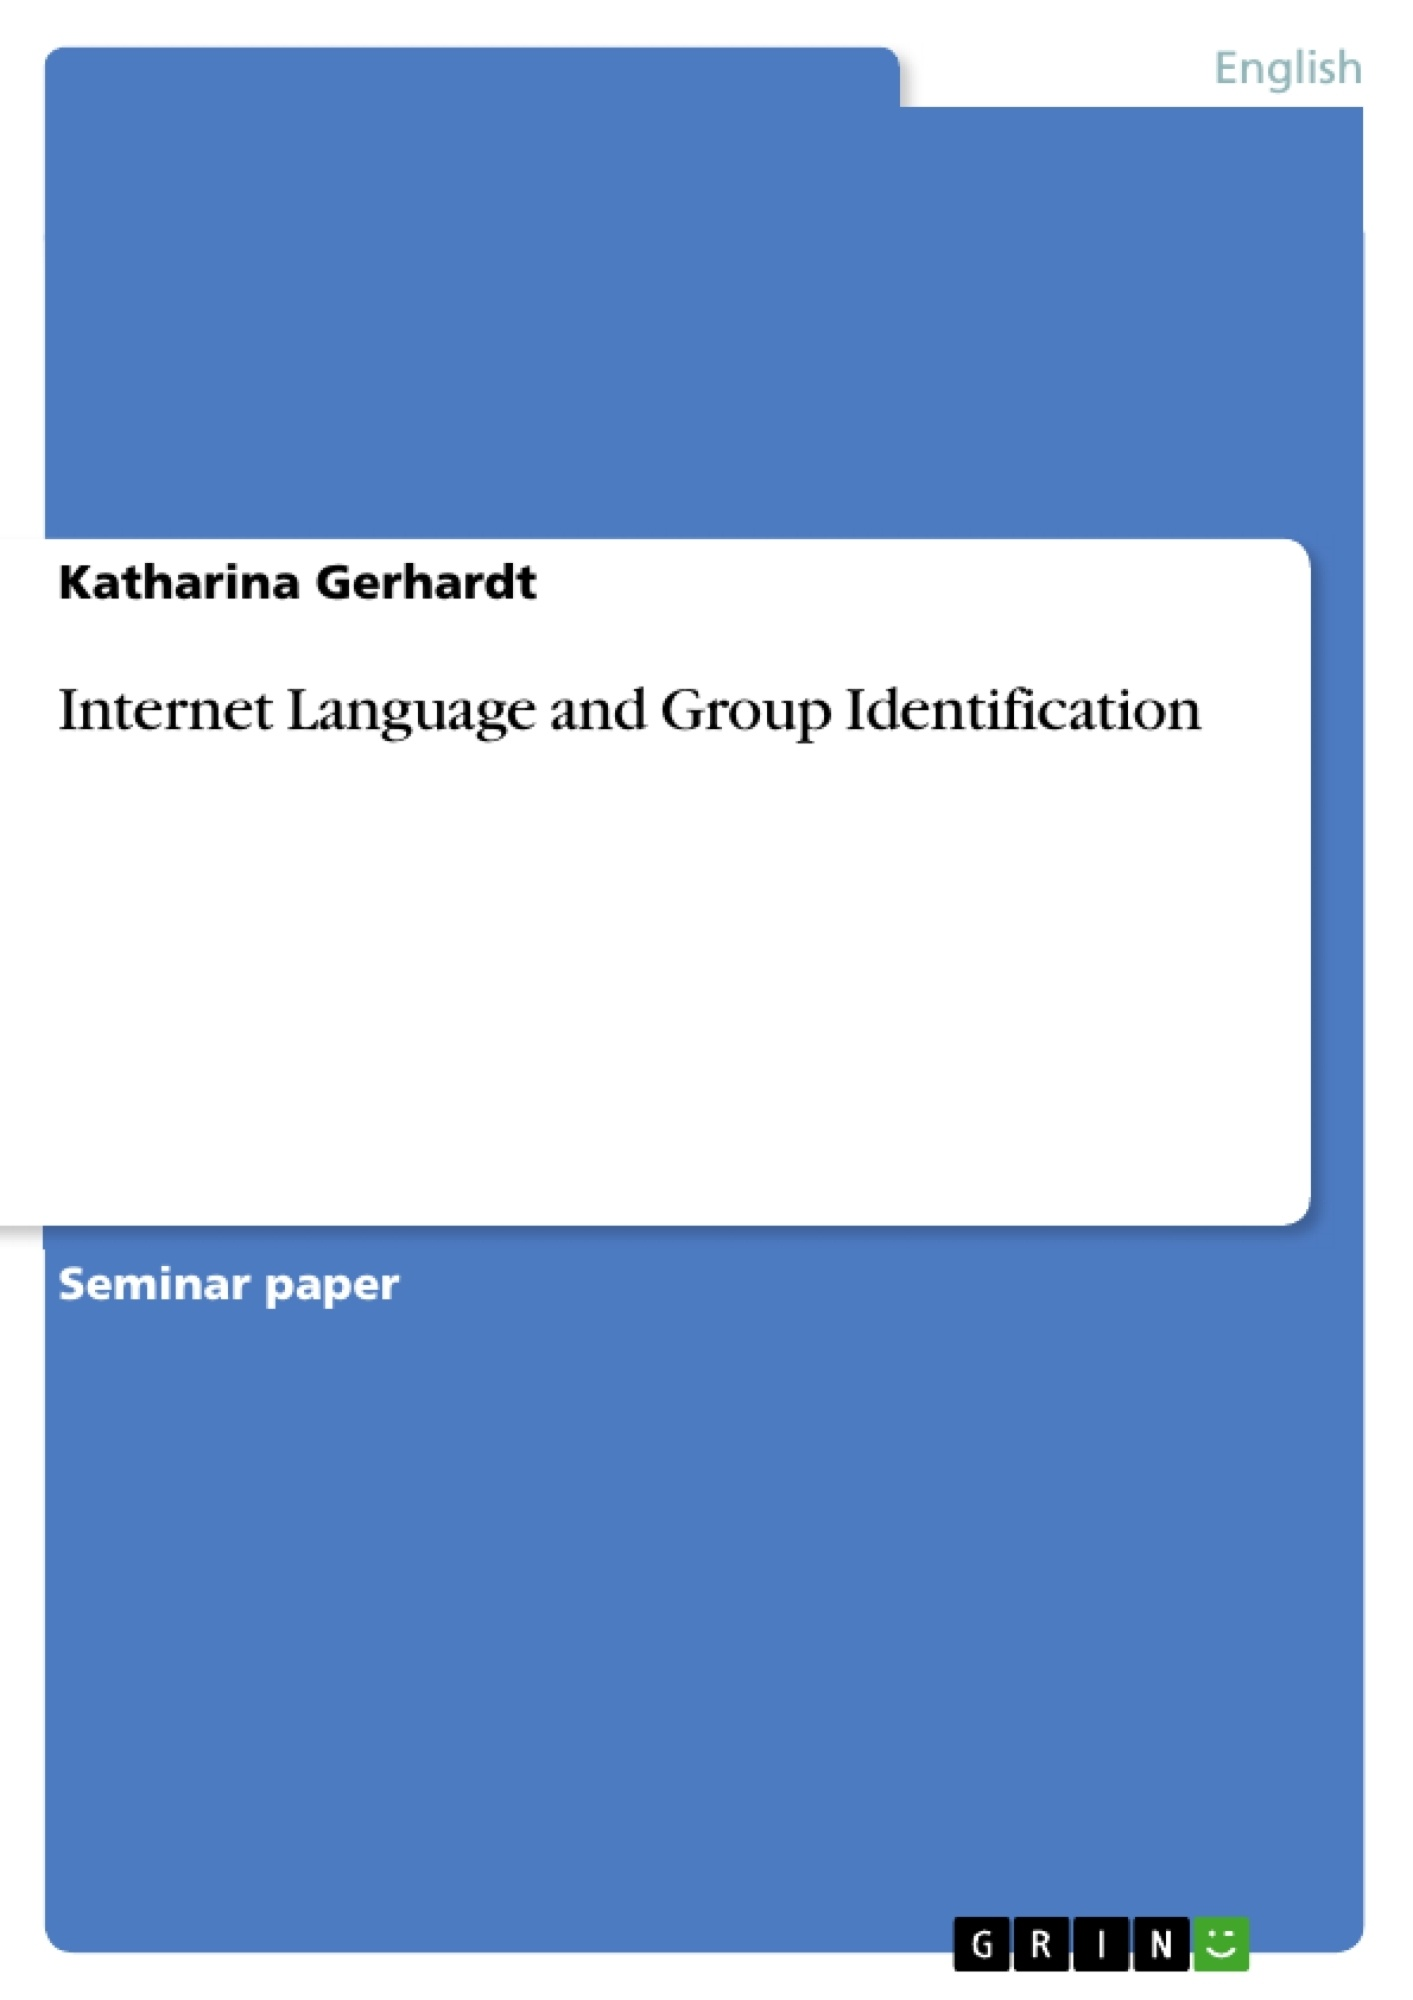 Title: Internet Language and Group Identification